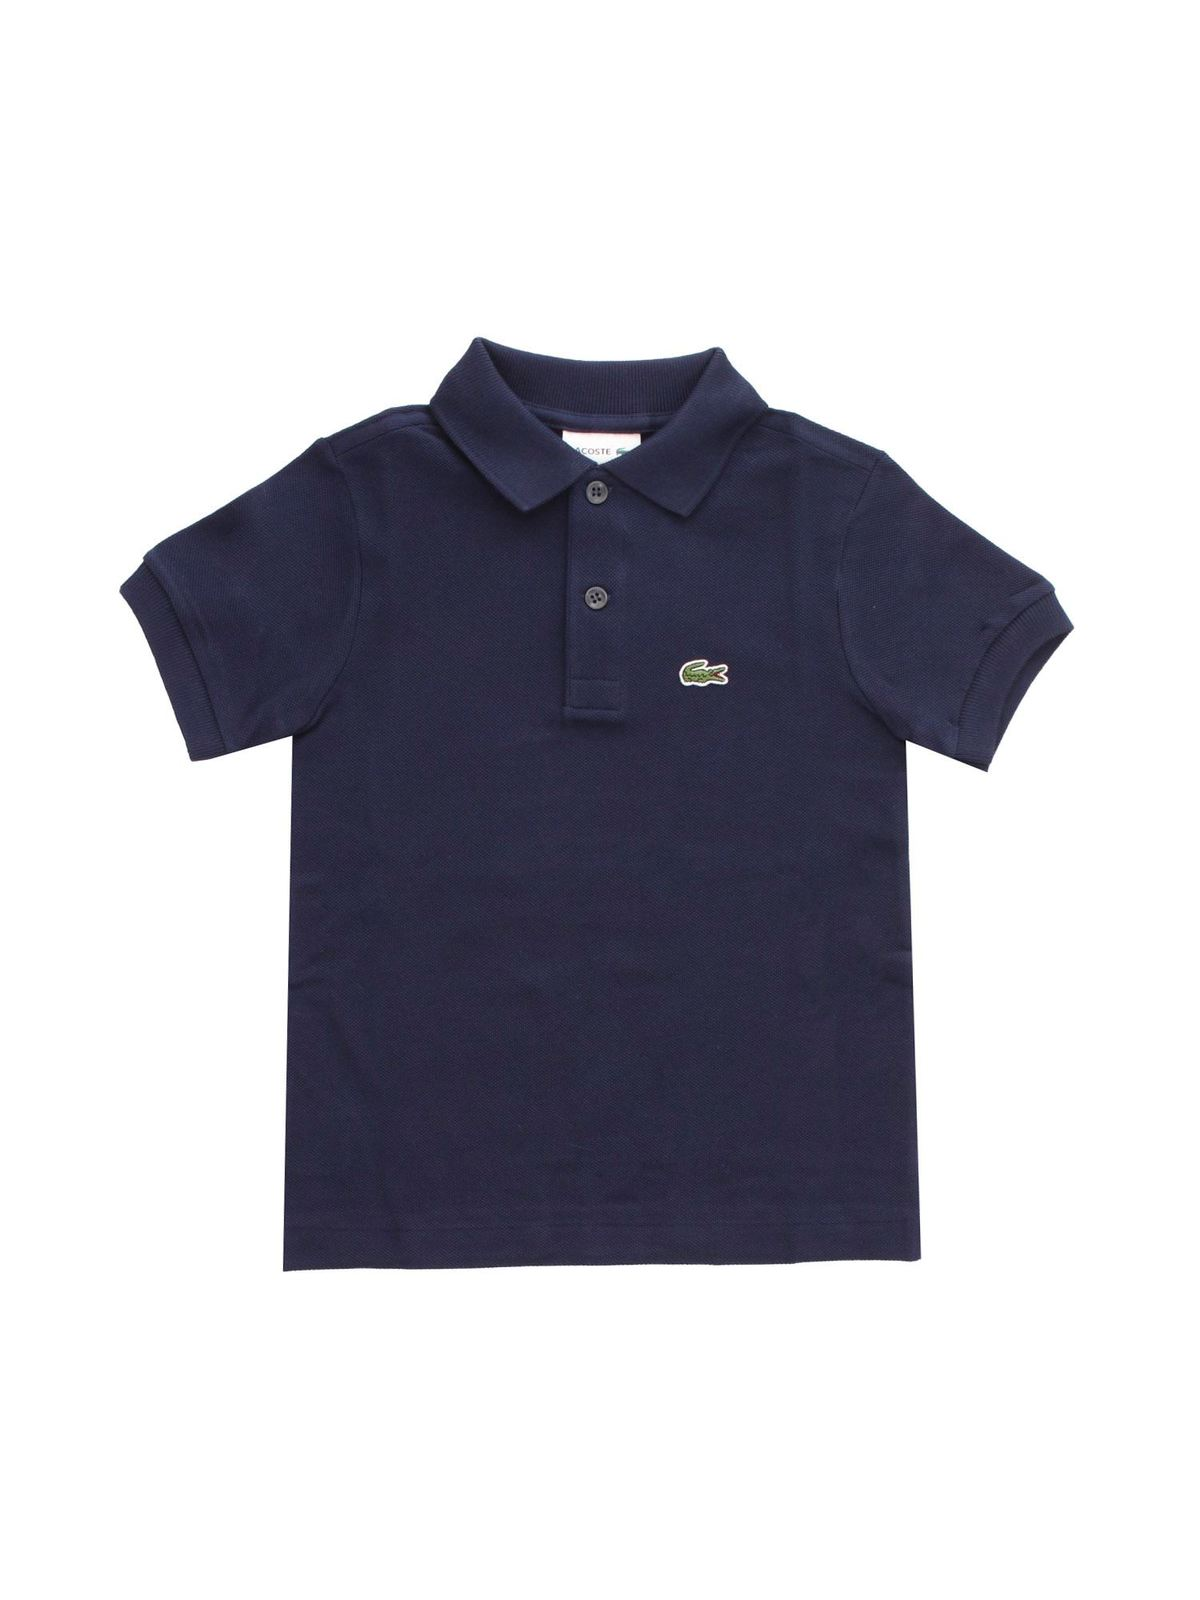 Lacoste Cottons LOGO PATCH POLO SHIRT IN BLUE